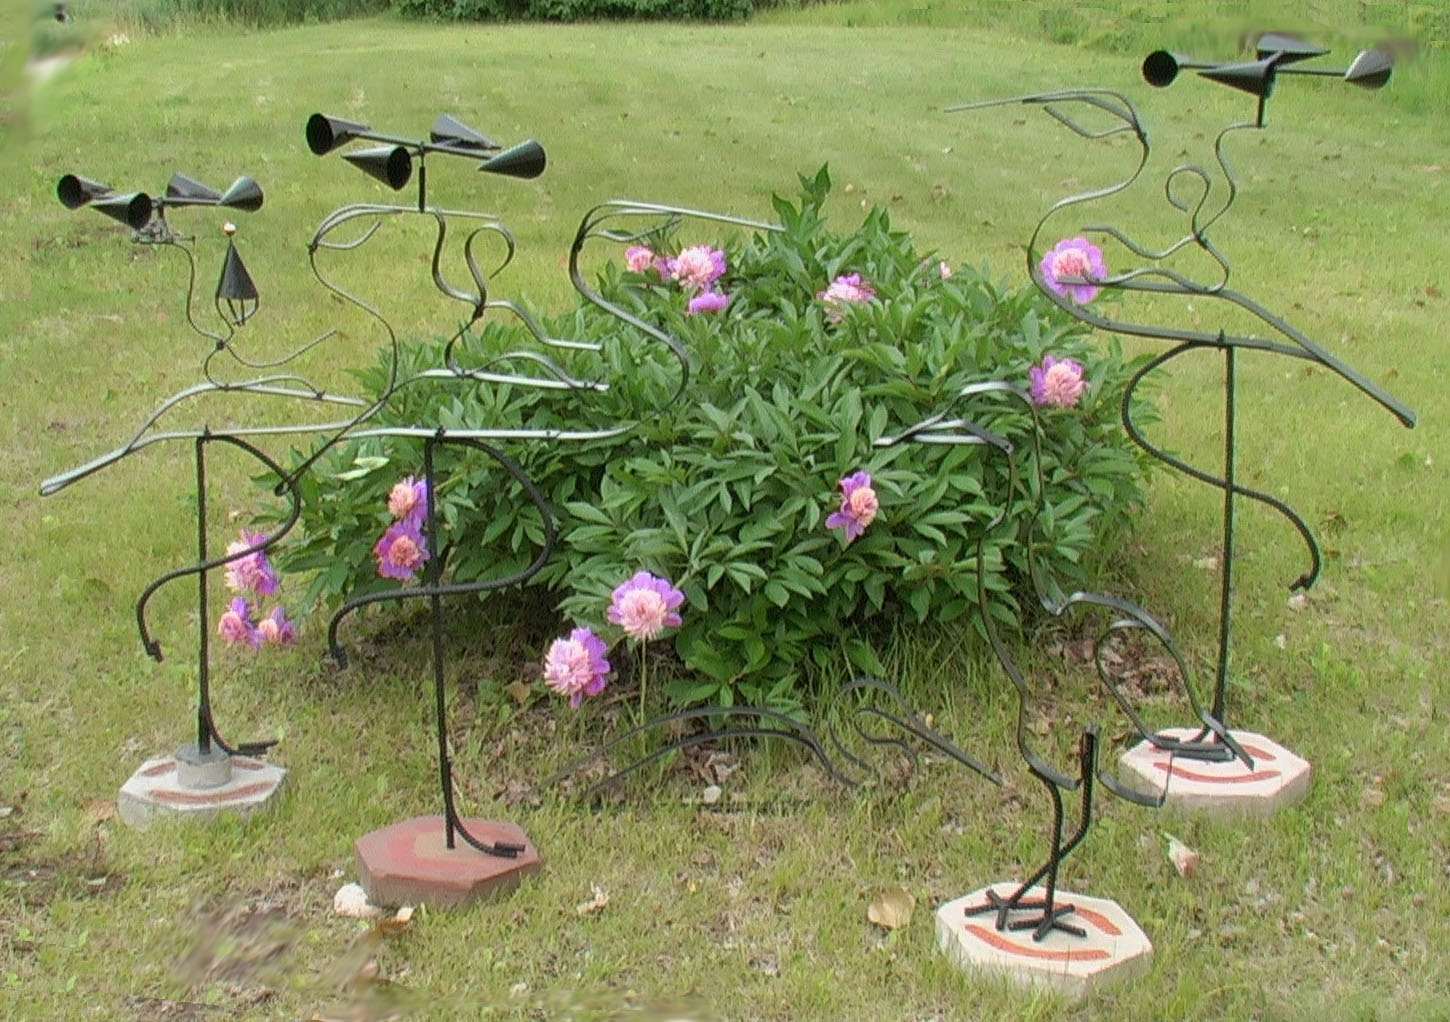 you make some garden sculptures it would look great in our garden